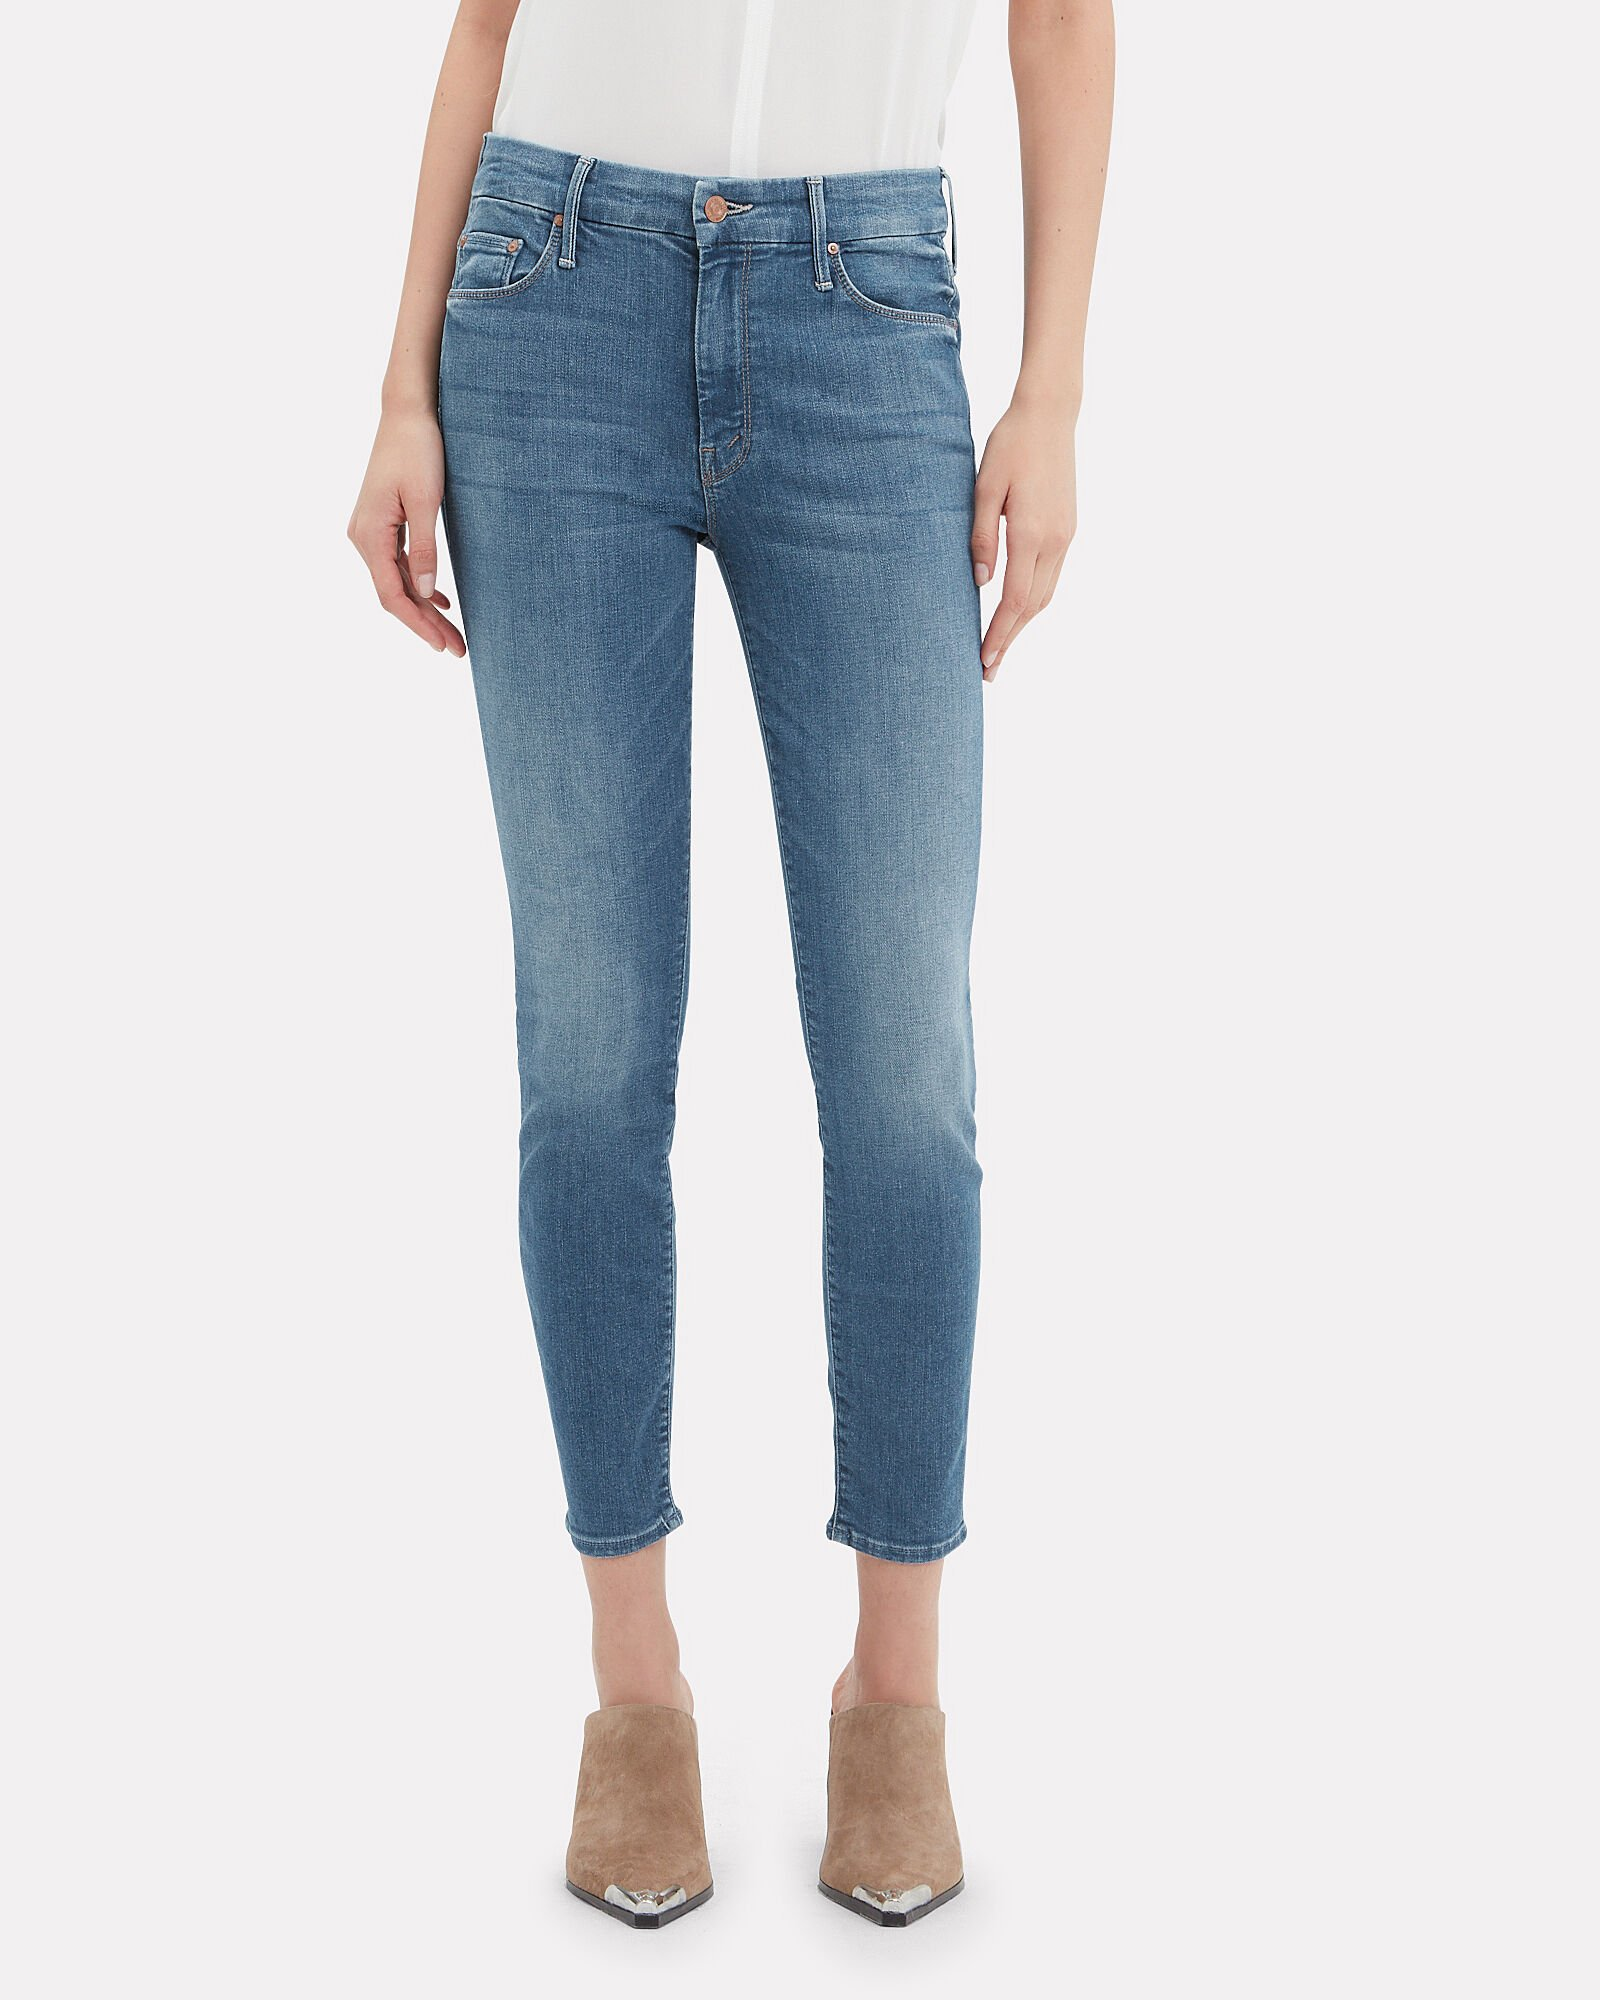 Looker Ankle Skinny Jeans, DENIM, hi-res